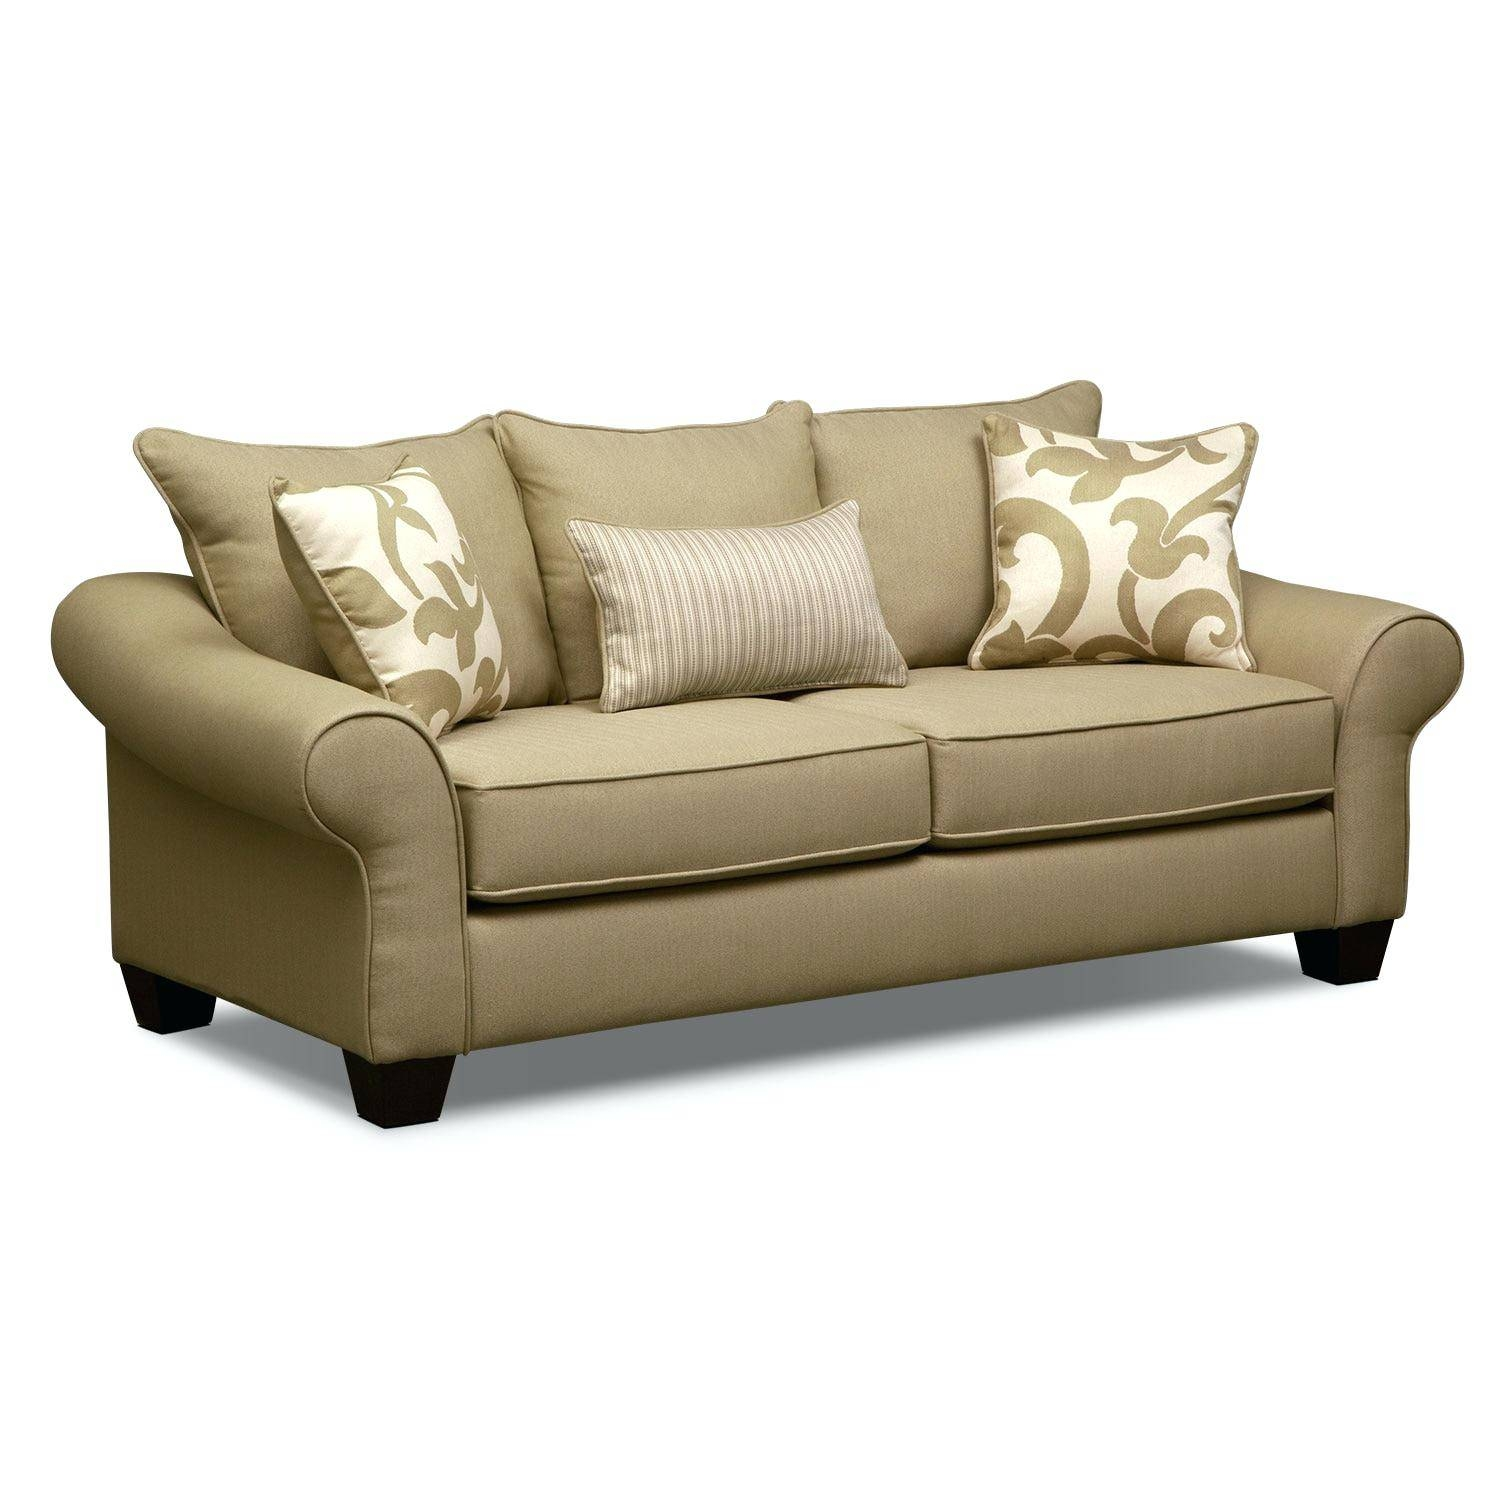 Value City Furniture Sofas – Cybellegear with regard to Commercial Sofas (Image 15 of 15)